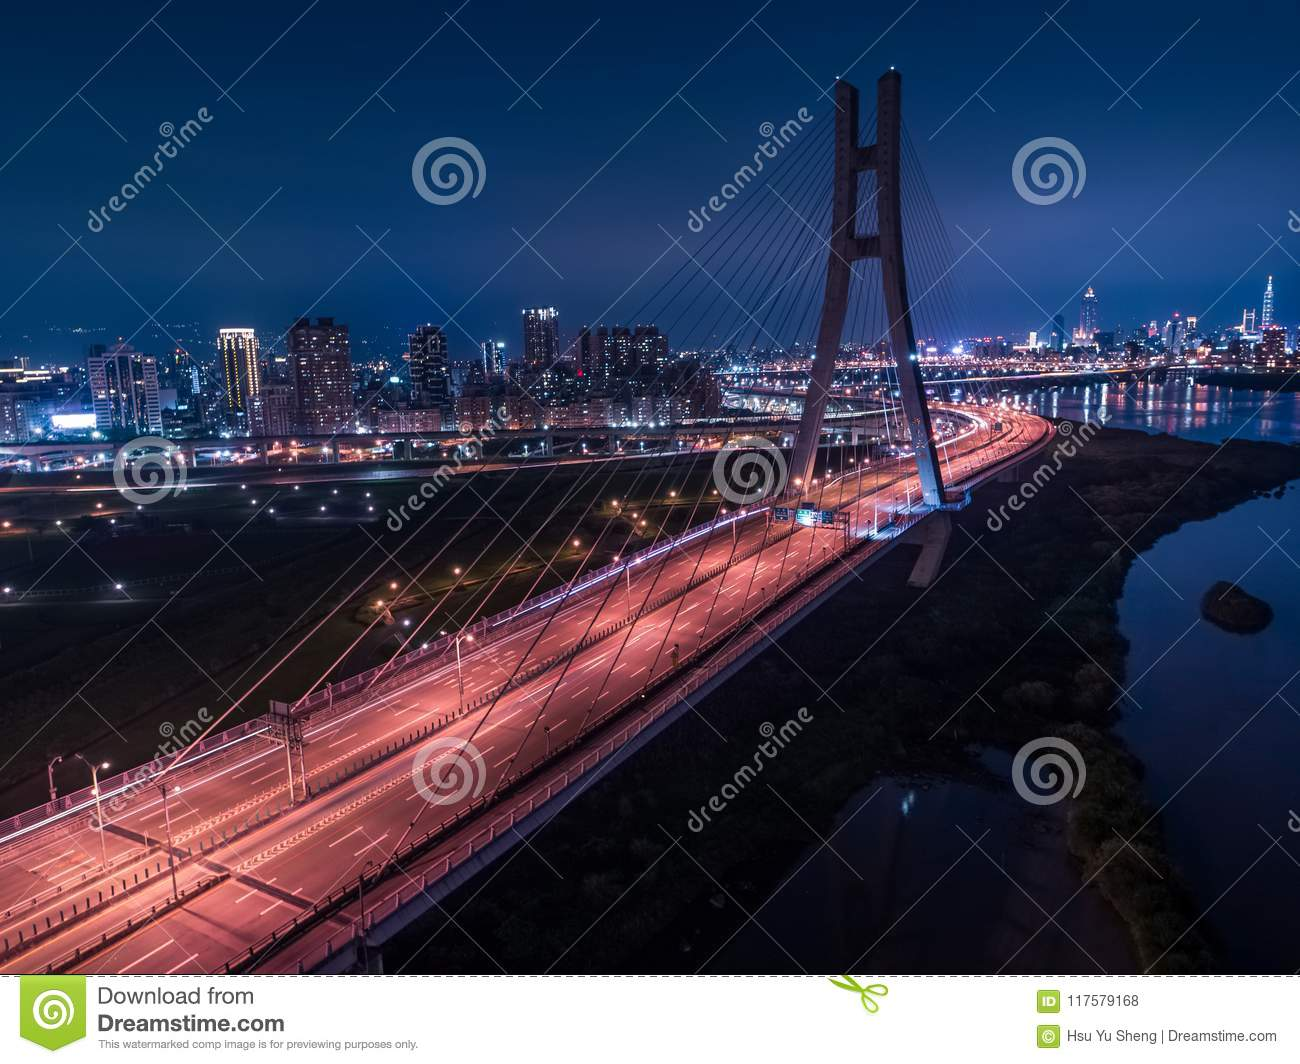 Car Light Trails Of New Taipei Bridge Long Exposure Of Aerial Photography Use The Drone At Night In New Taipei Taiwan Stock Photo Image Of Road District 117579168